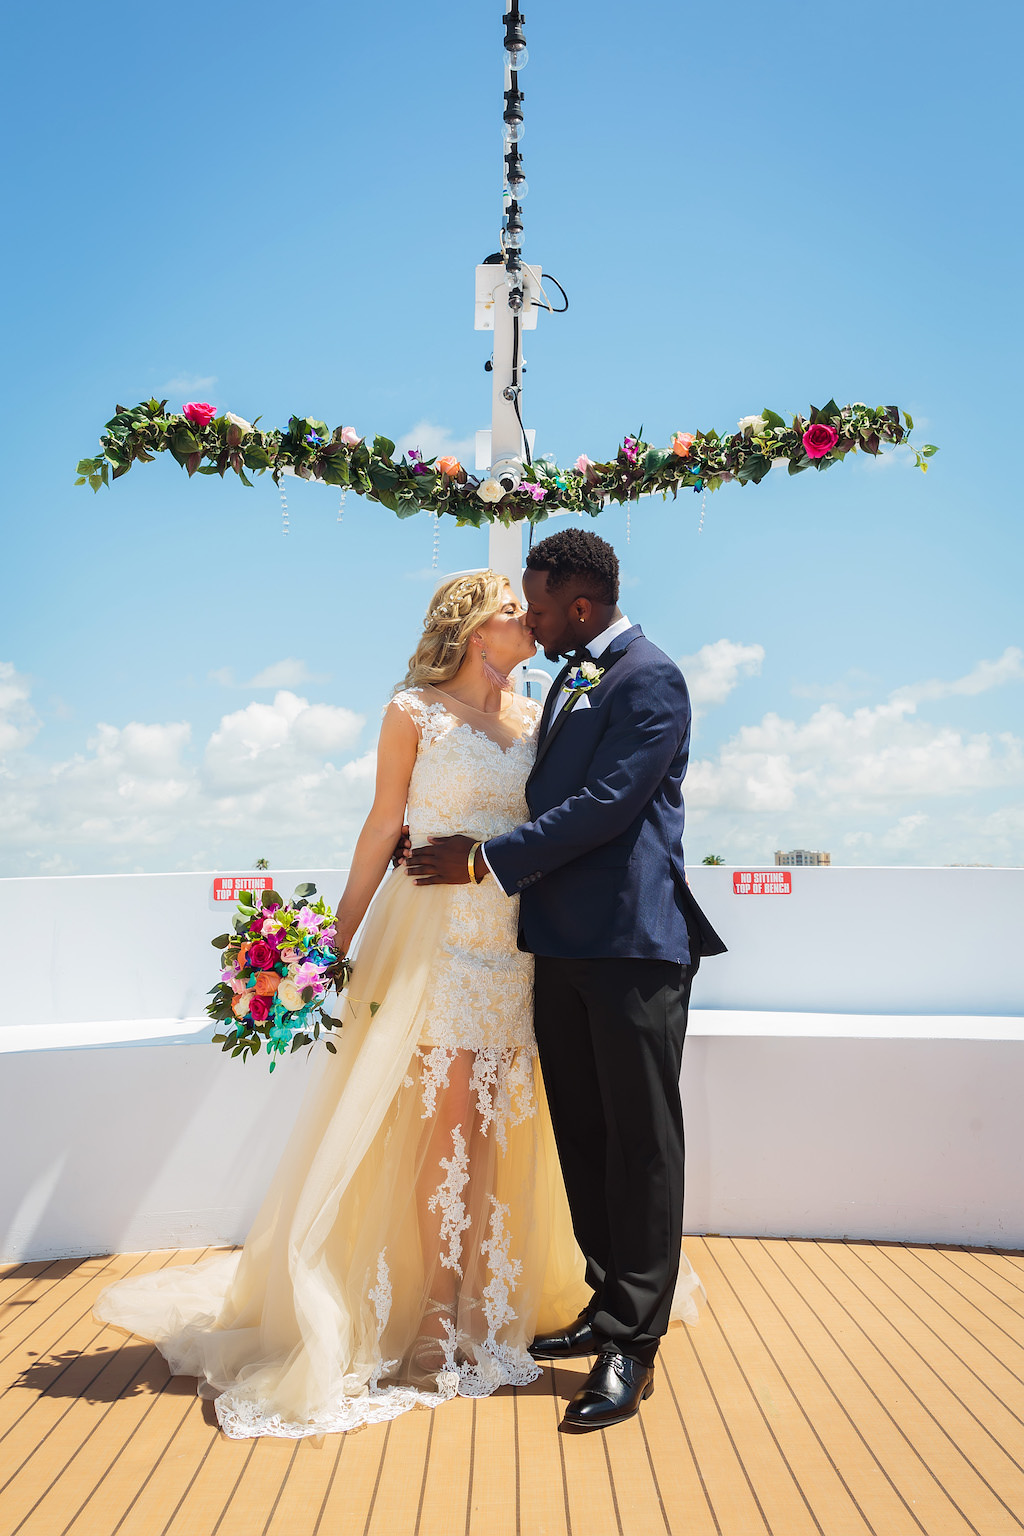 Florida Bride and Groom Wedding Portrait on Deck of Yacht, Bride in Lace and Illusion with Tulle Train High Scoop Neckline Wedding Dress with Colorful Floral Bridal Bouquet, Groom in Navy Blue Tuxedo | Unique Waterfront Tampa Wedding Venue The Yacht Starship IV